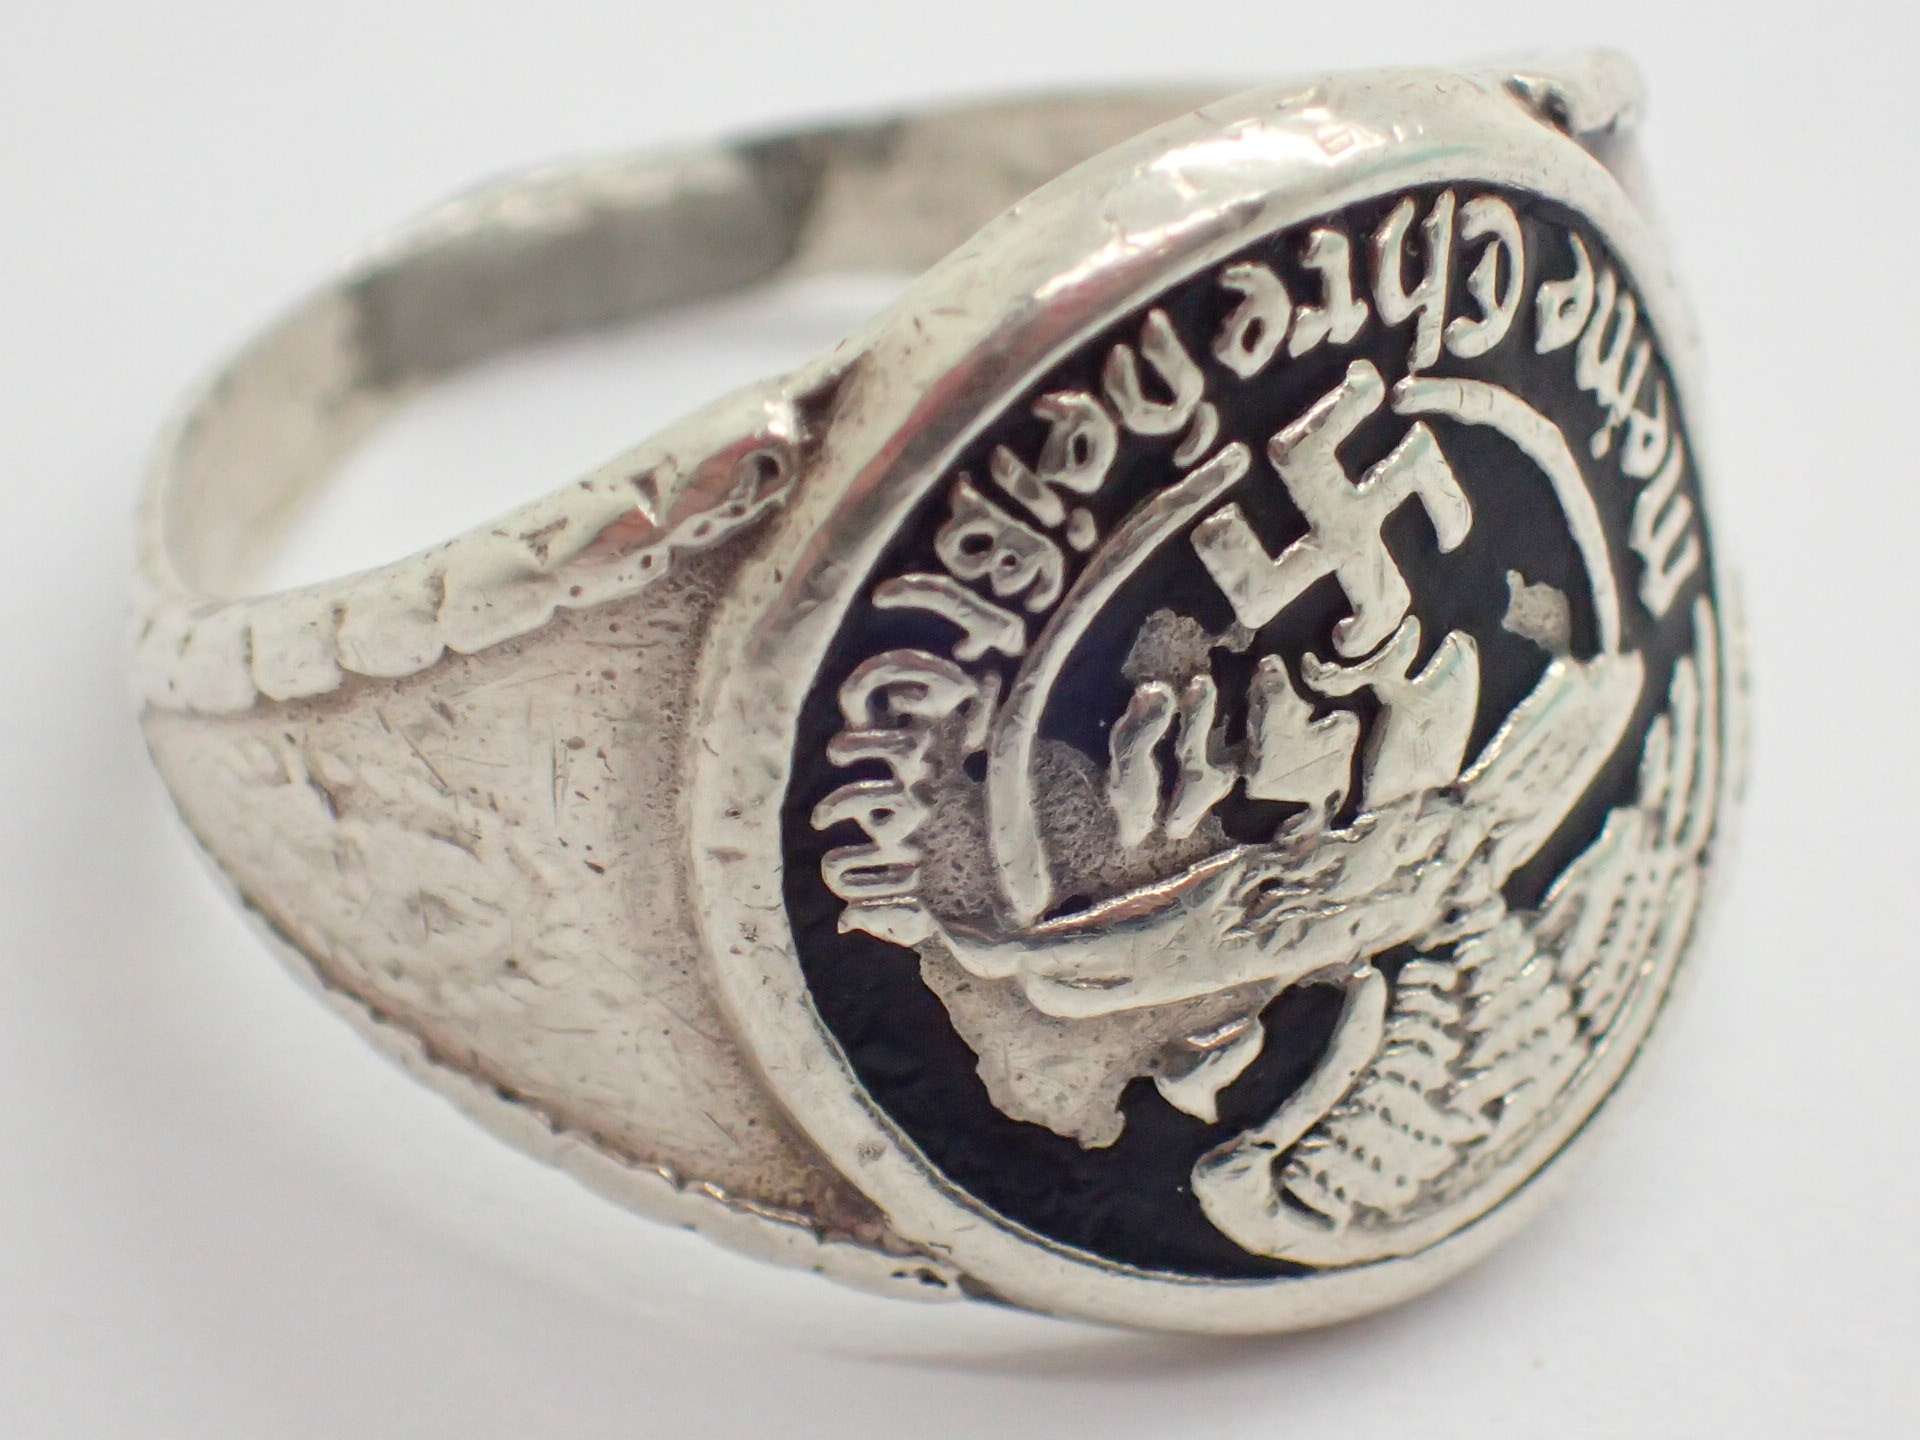 Lot 68 - WWII German SS 800 silver ring